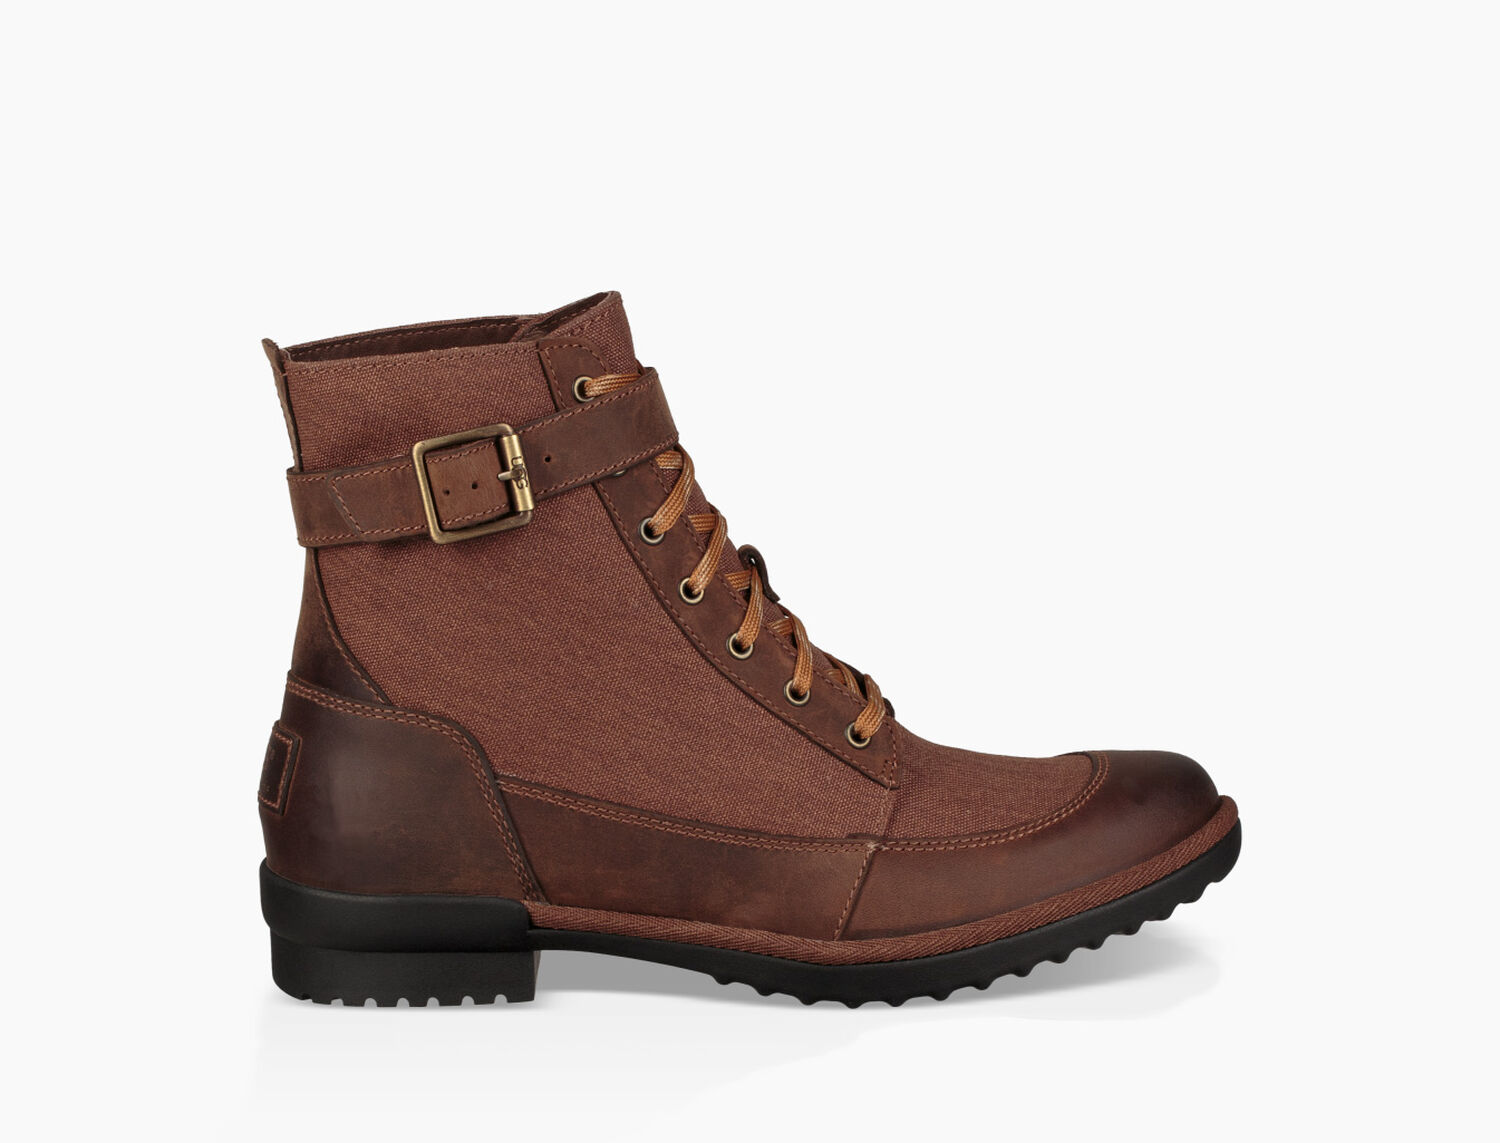 2b41f279133 Women's Share this product Tulane Boot